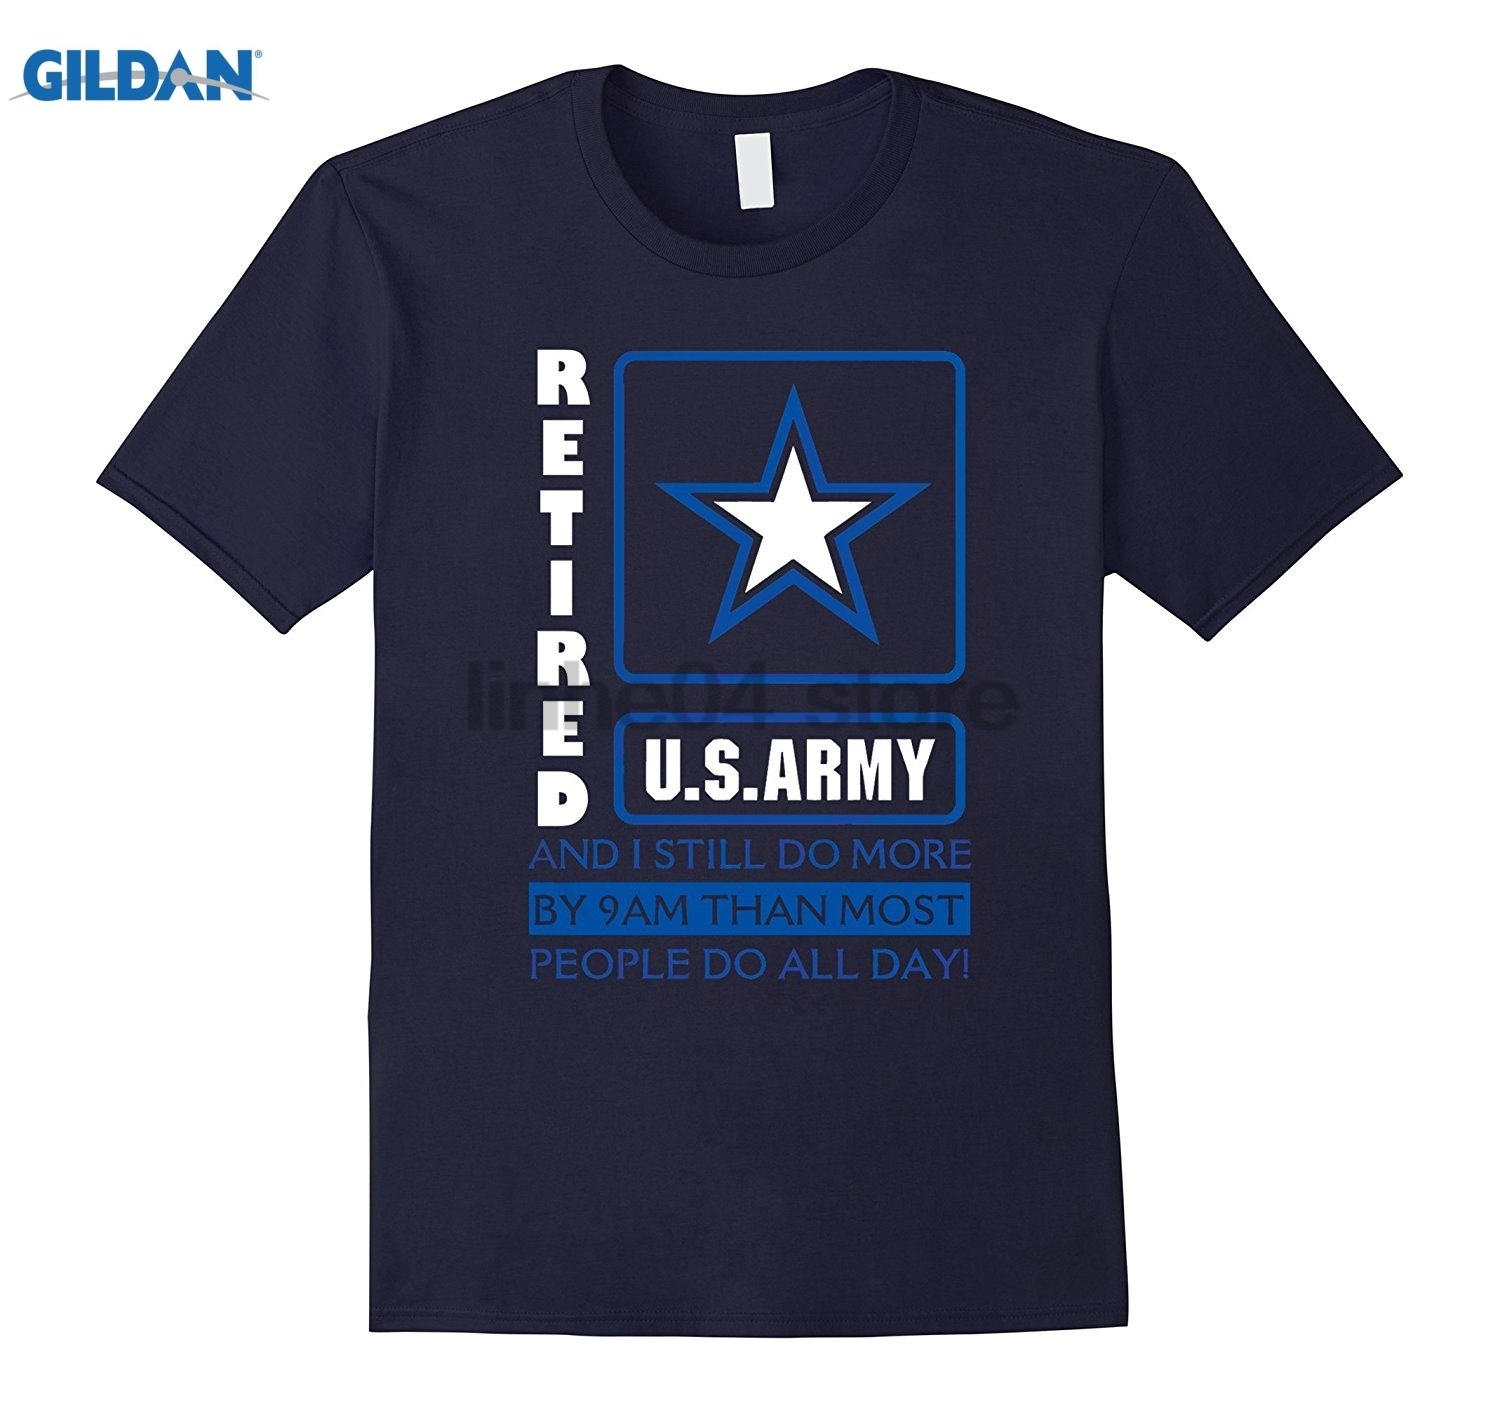 GILDAN U.S ARMY T Shirt Mothers Day Ms. T-shirt Dress female T-shirt ...